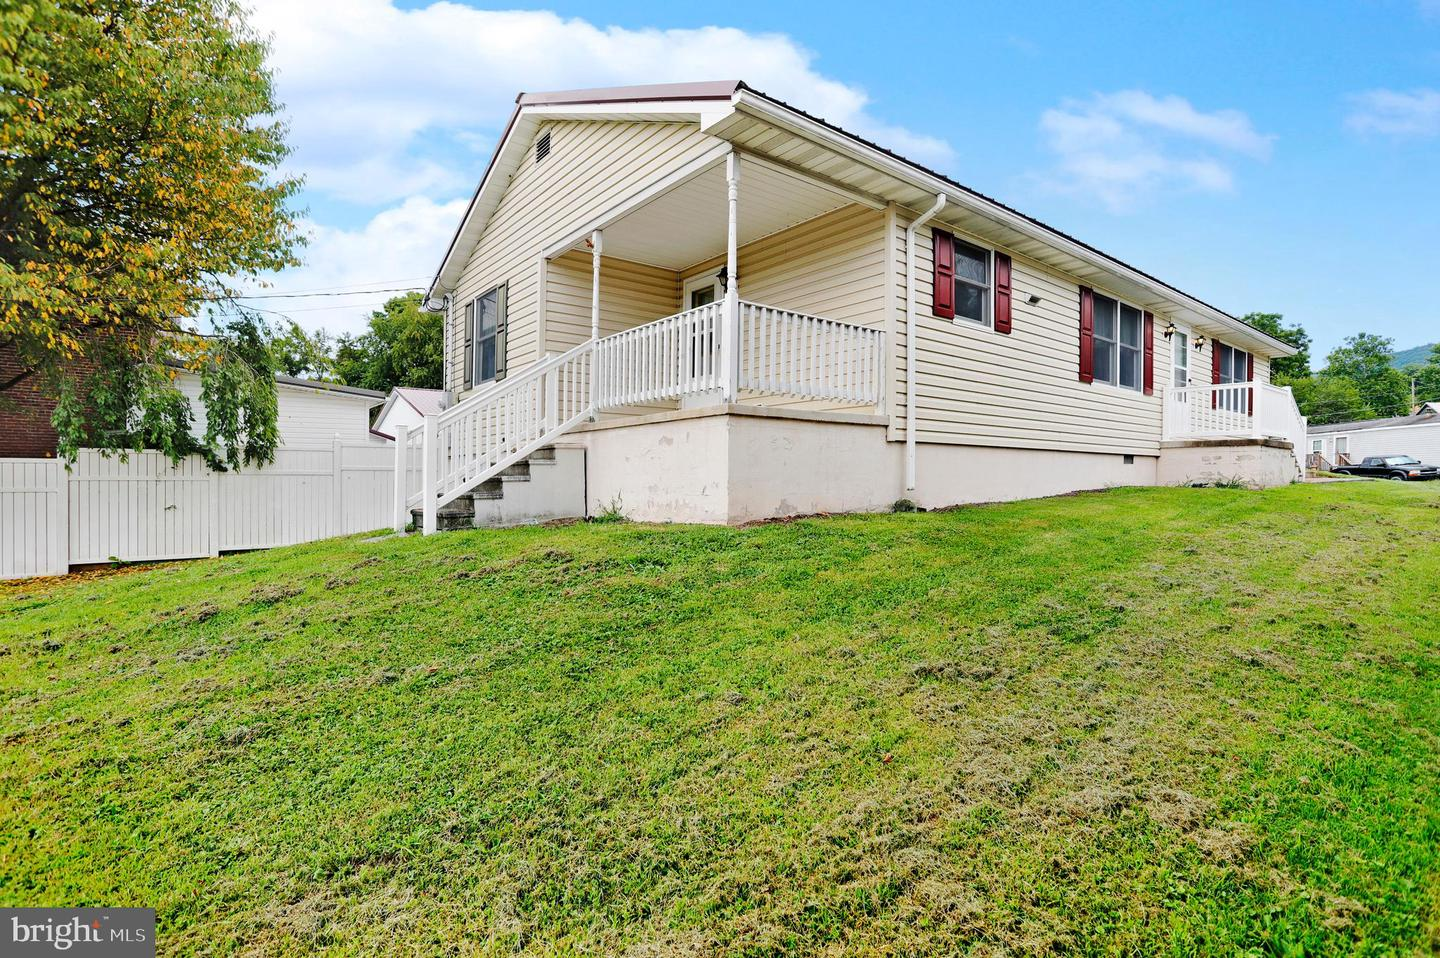 Single Family Homes for Sale at Orbisonia, Pennsylvania 17243 United States